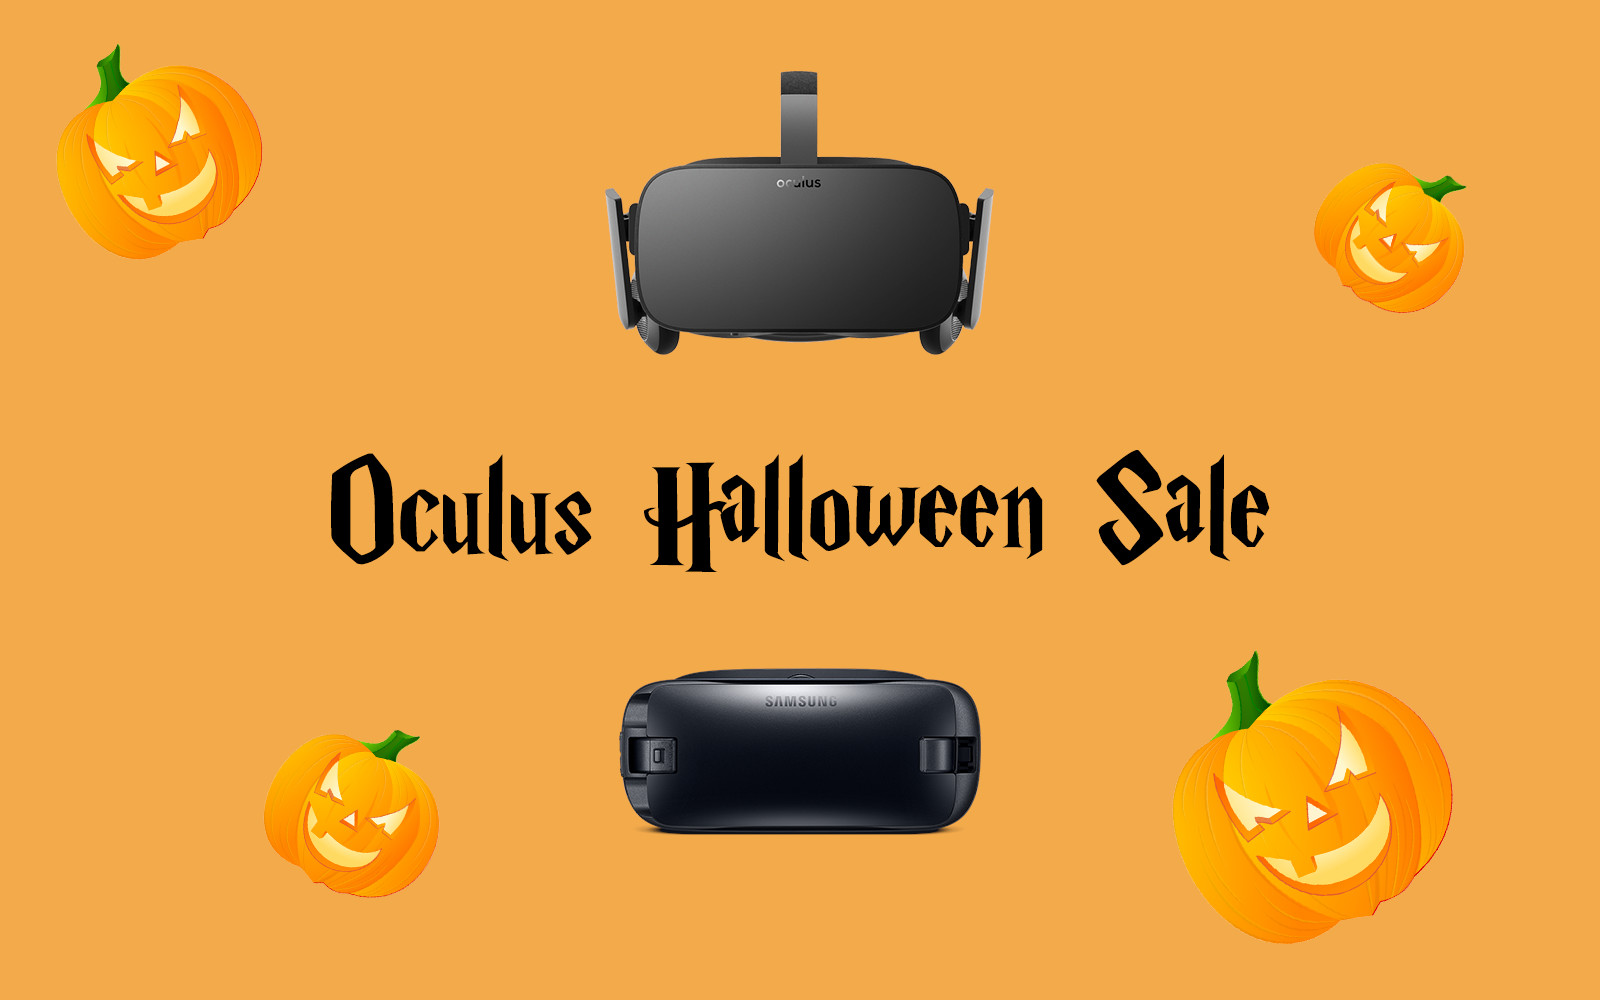 Oculus Launches Halloween Sale On Horror Themed VR Games For Rift And Gear VR